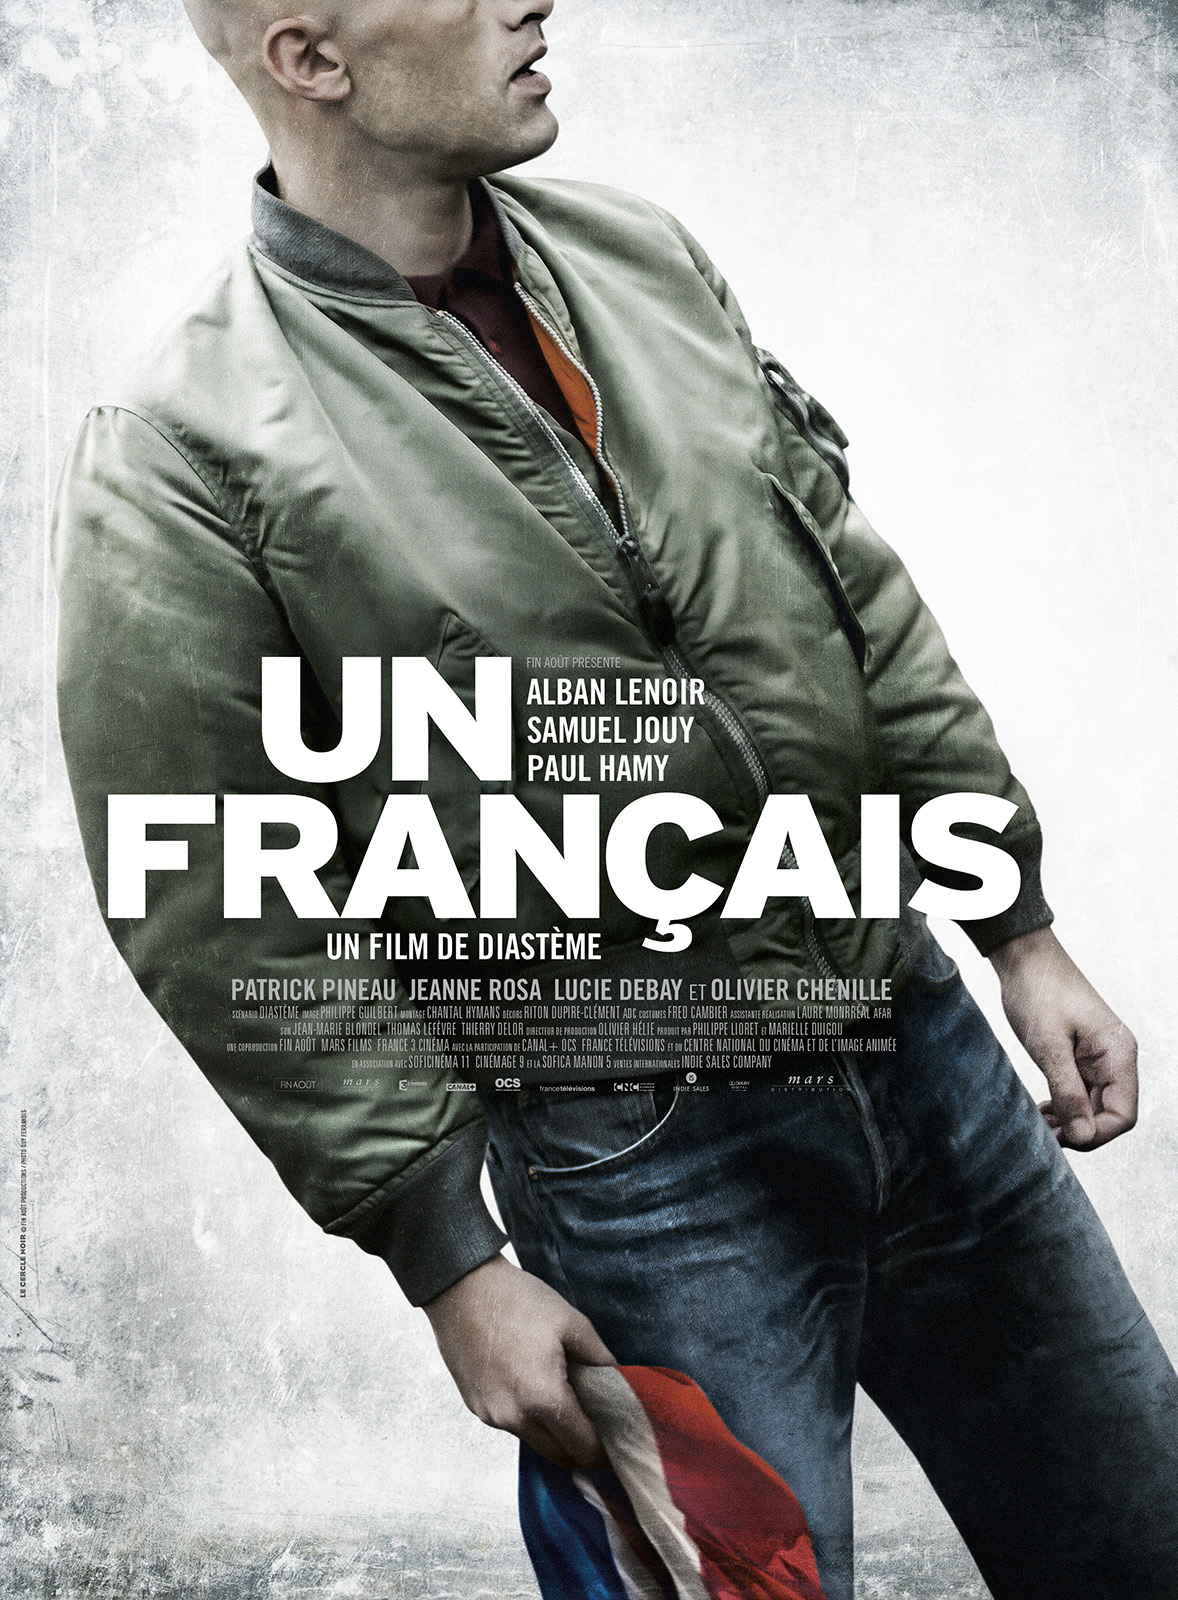 Filme Skinhead within un français - film 2014 - allociné